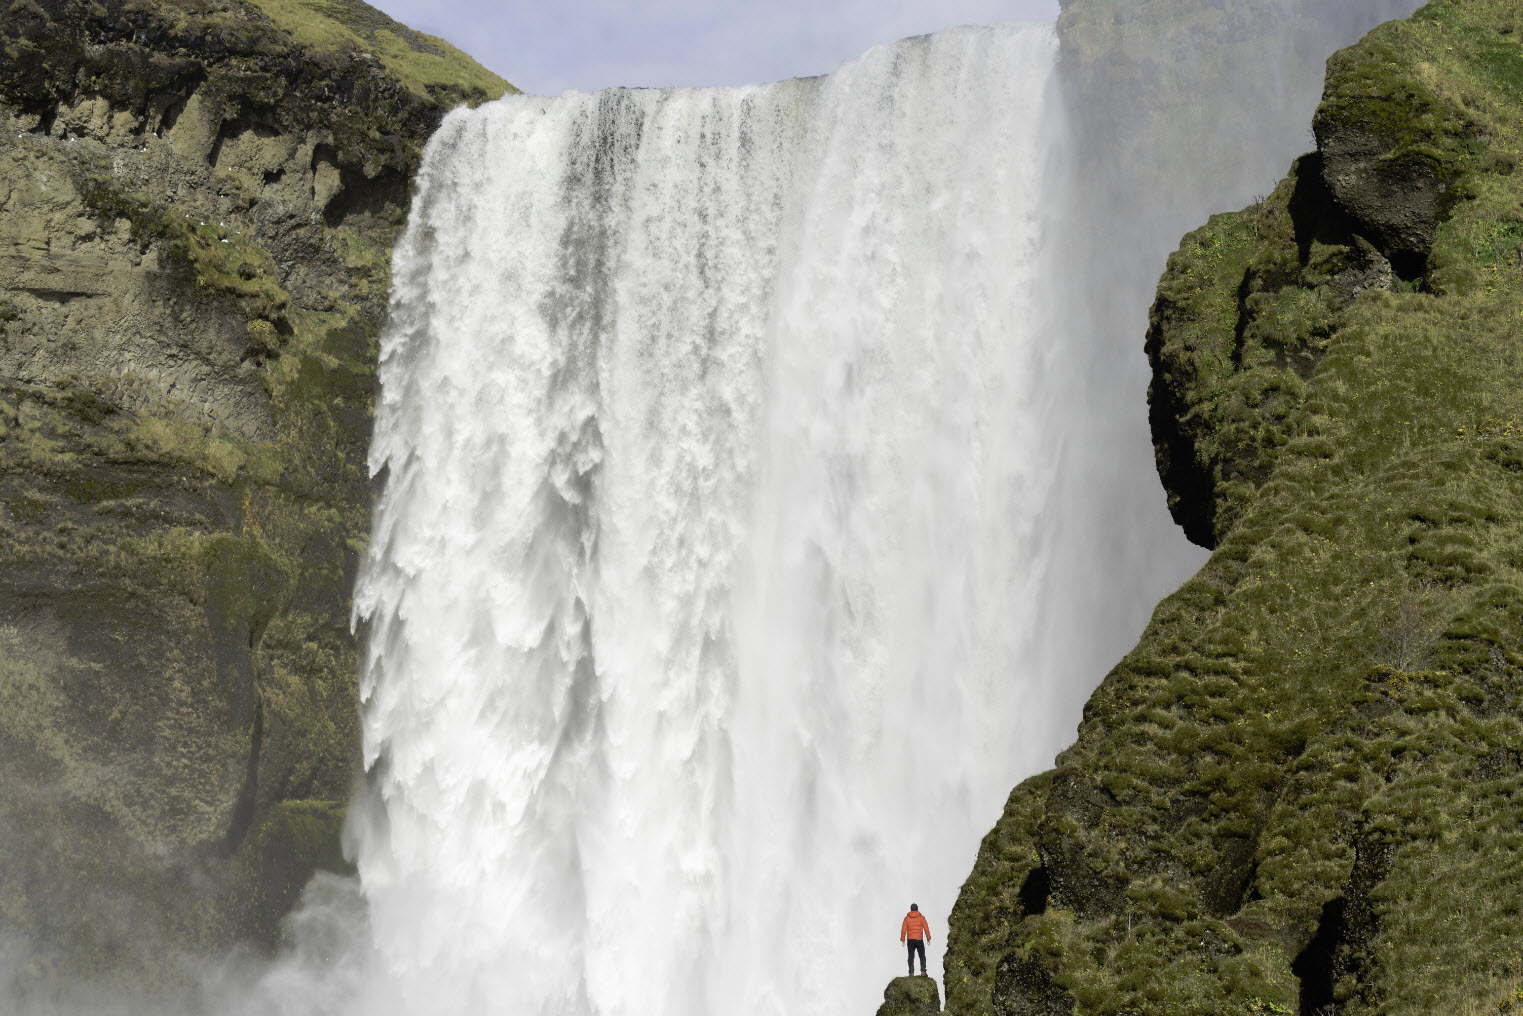 The mighty falls of Skogafoss